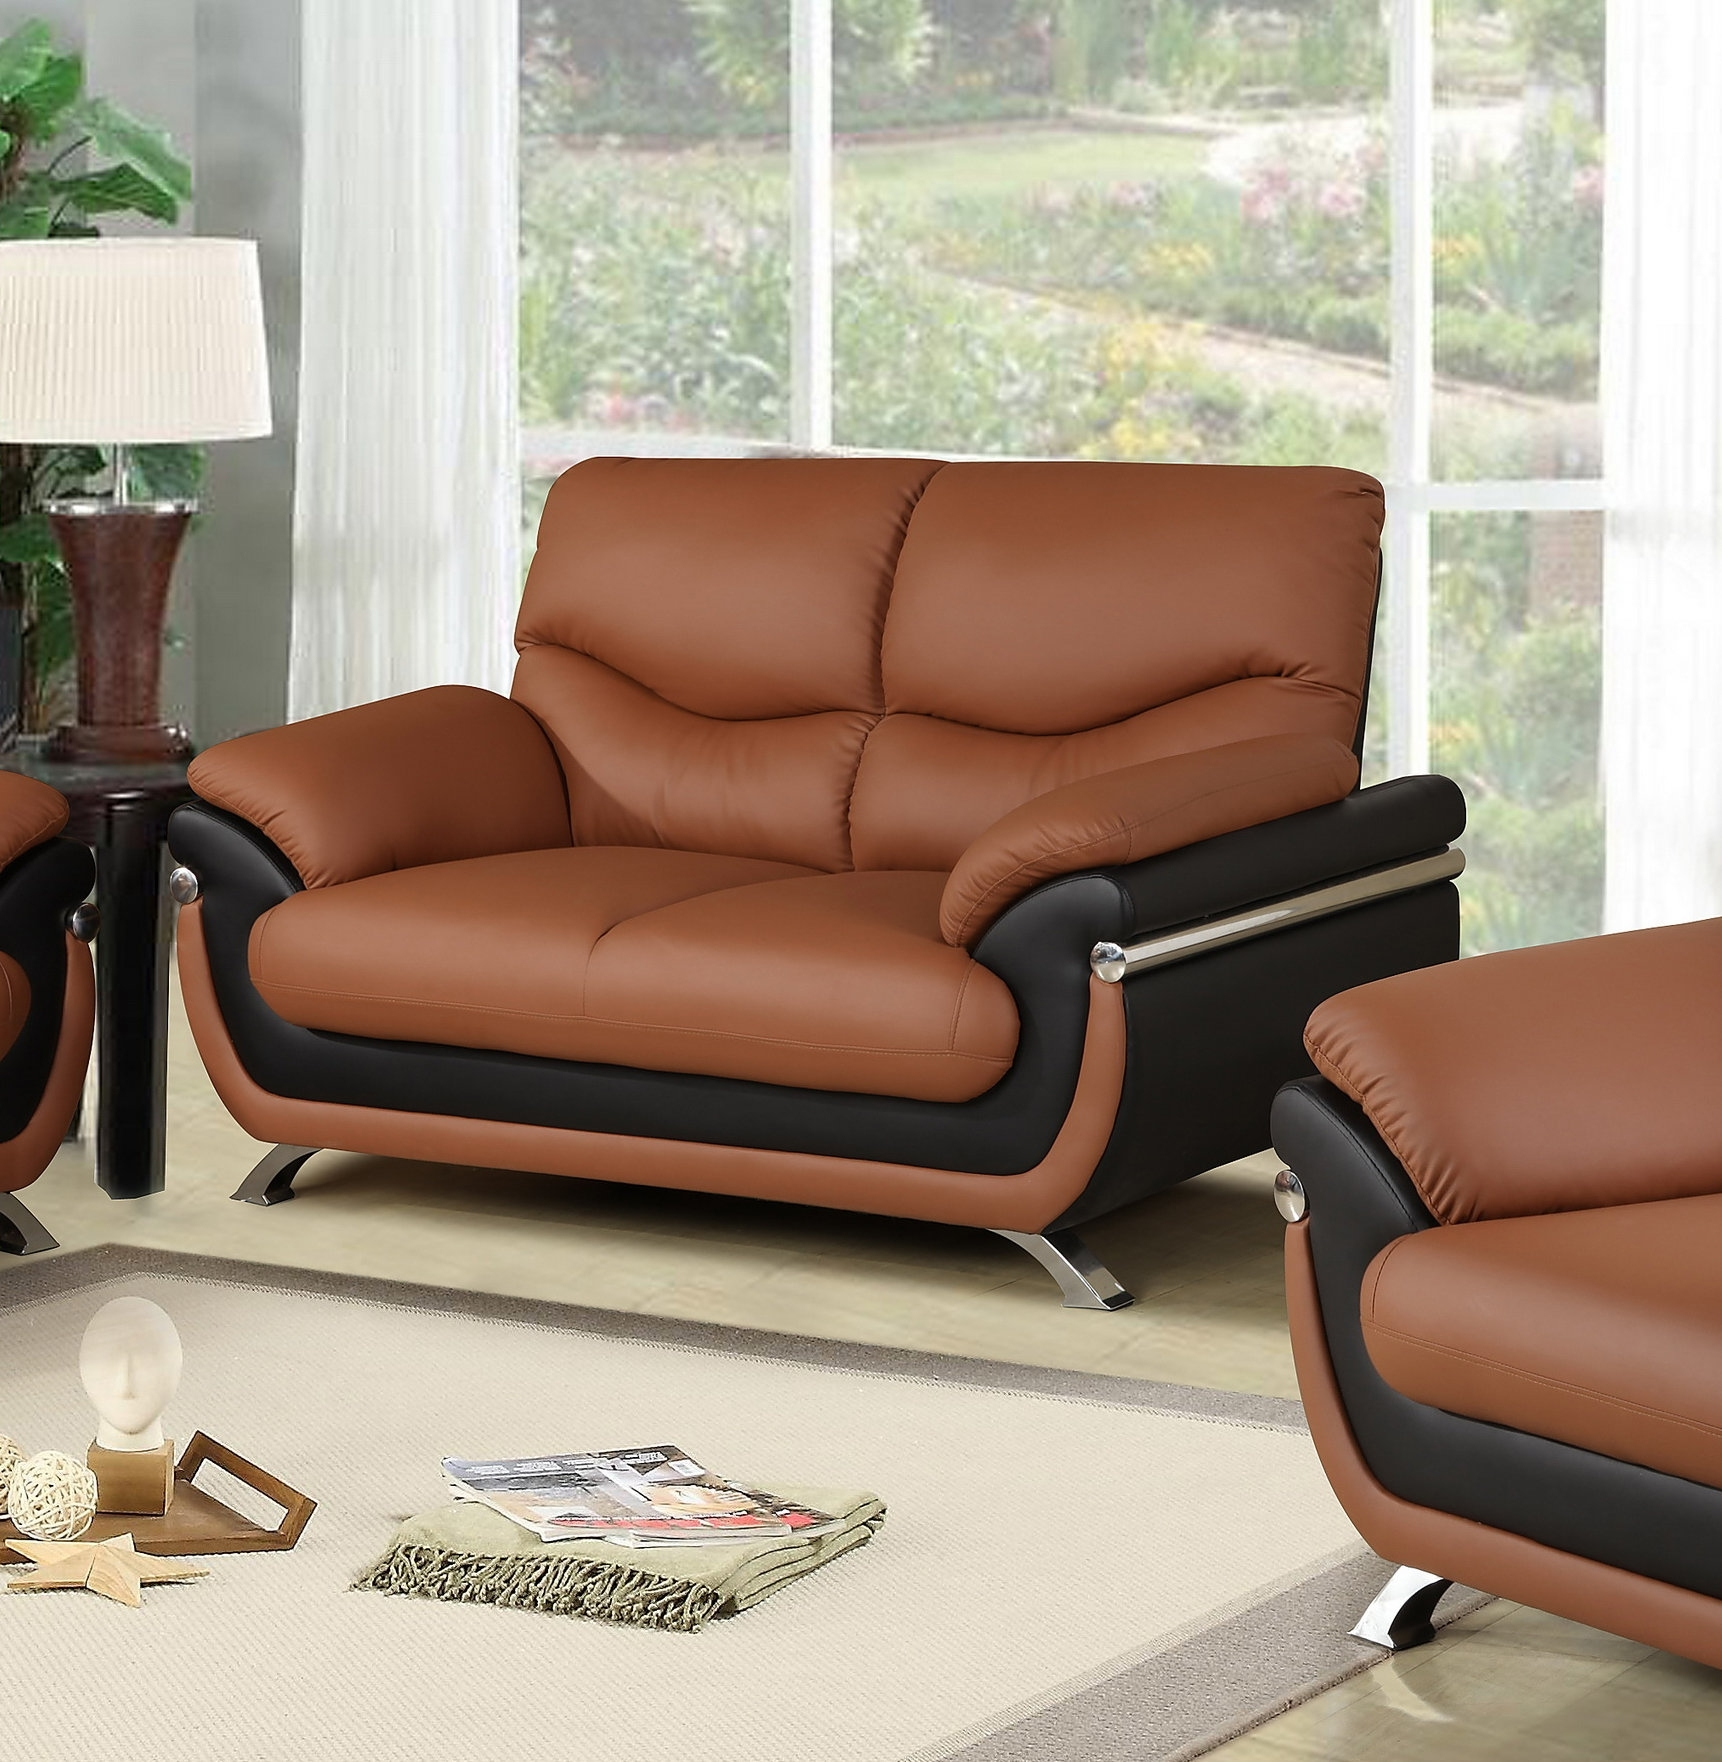 Beverly Fine Furniture | Wayfair regarding Declan 3 Piece Power Reclining Sectionals With Right Facing Console Loveseat (Image 4 of 30)